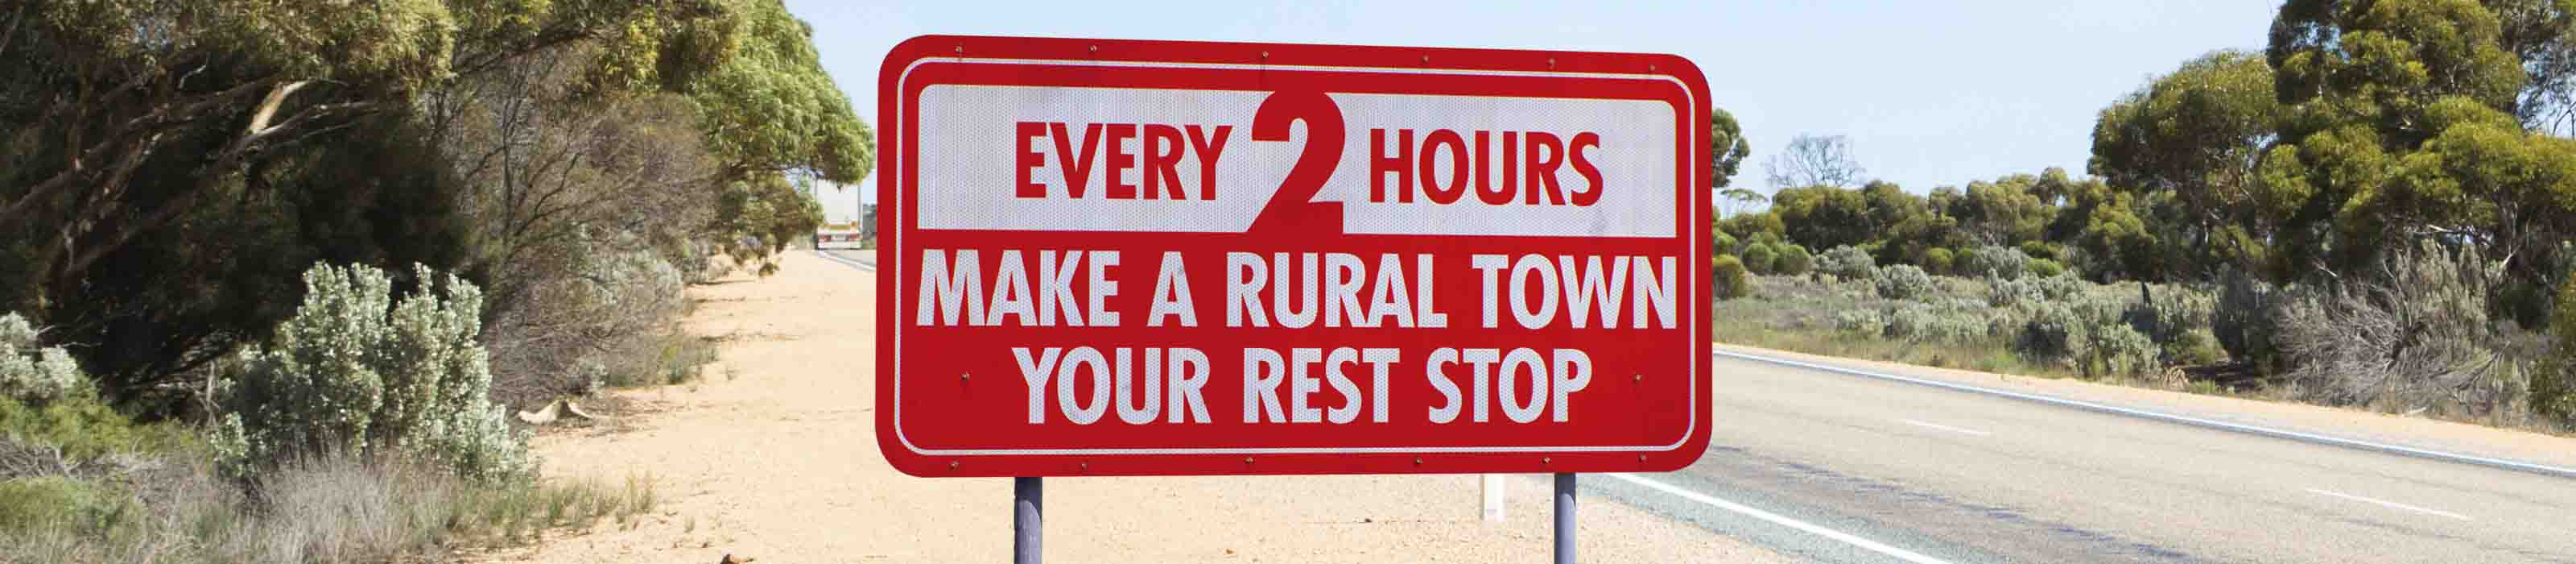 Make a rural town your rest stop